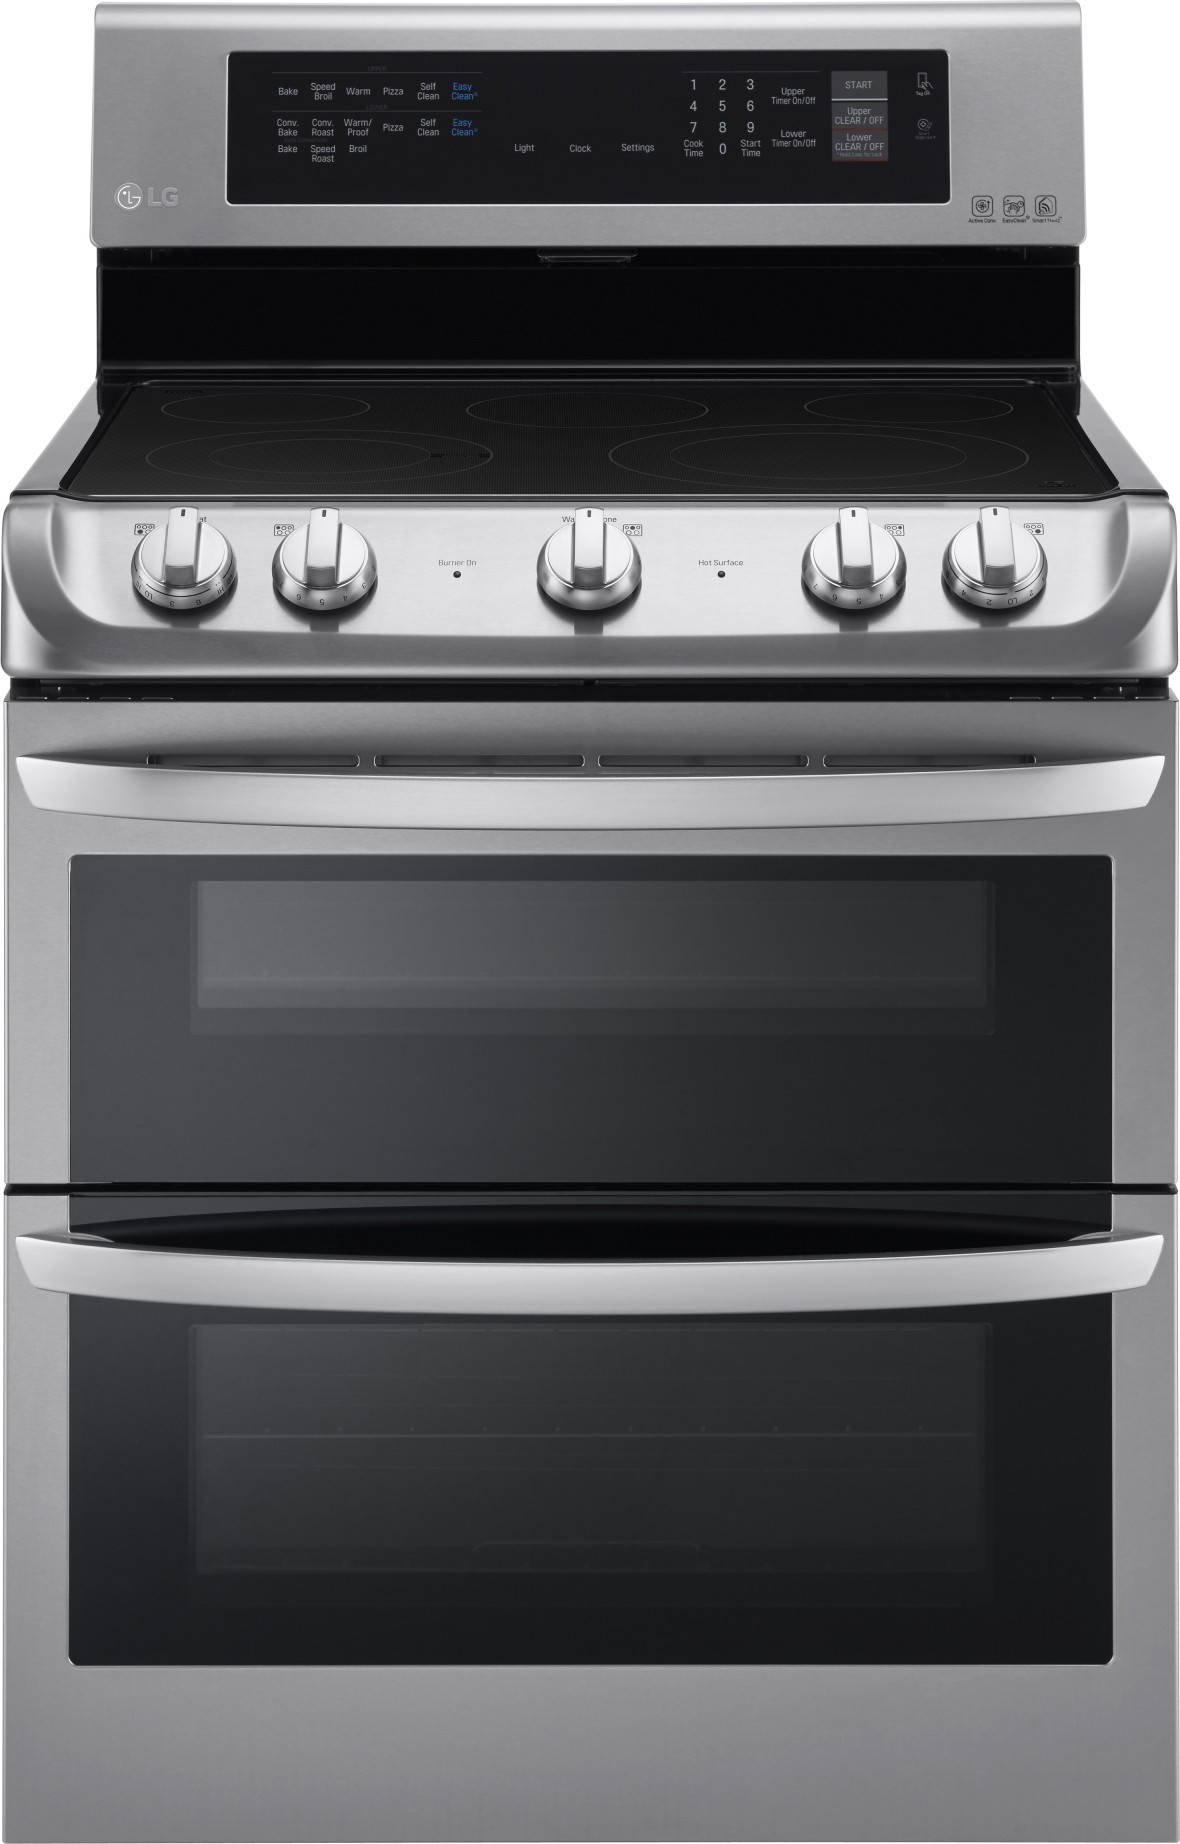 Lg Lde4413st 30 Dual Oven Electric Range Convection Self Clean